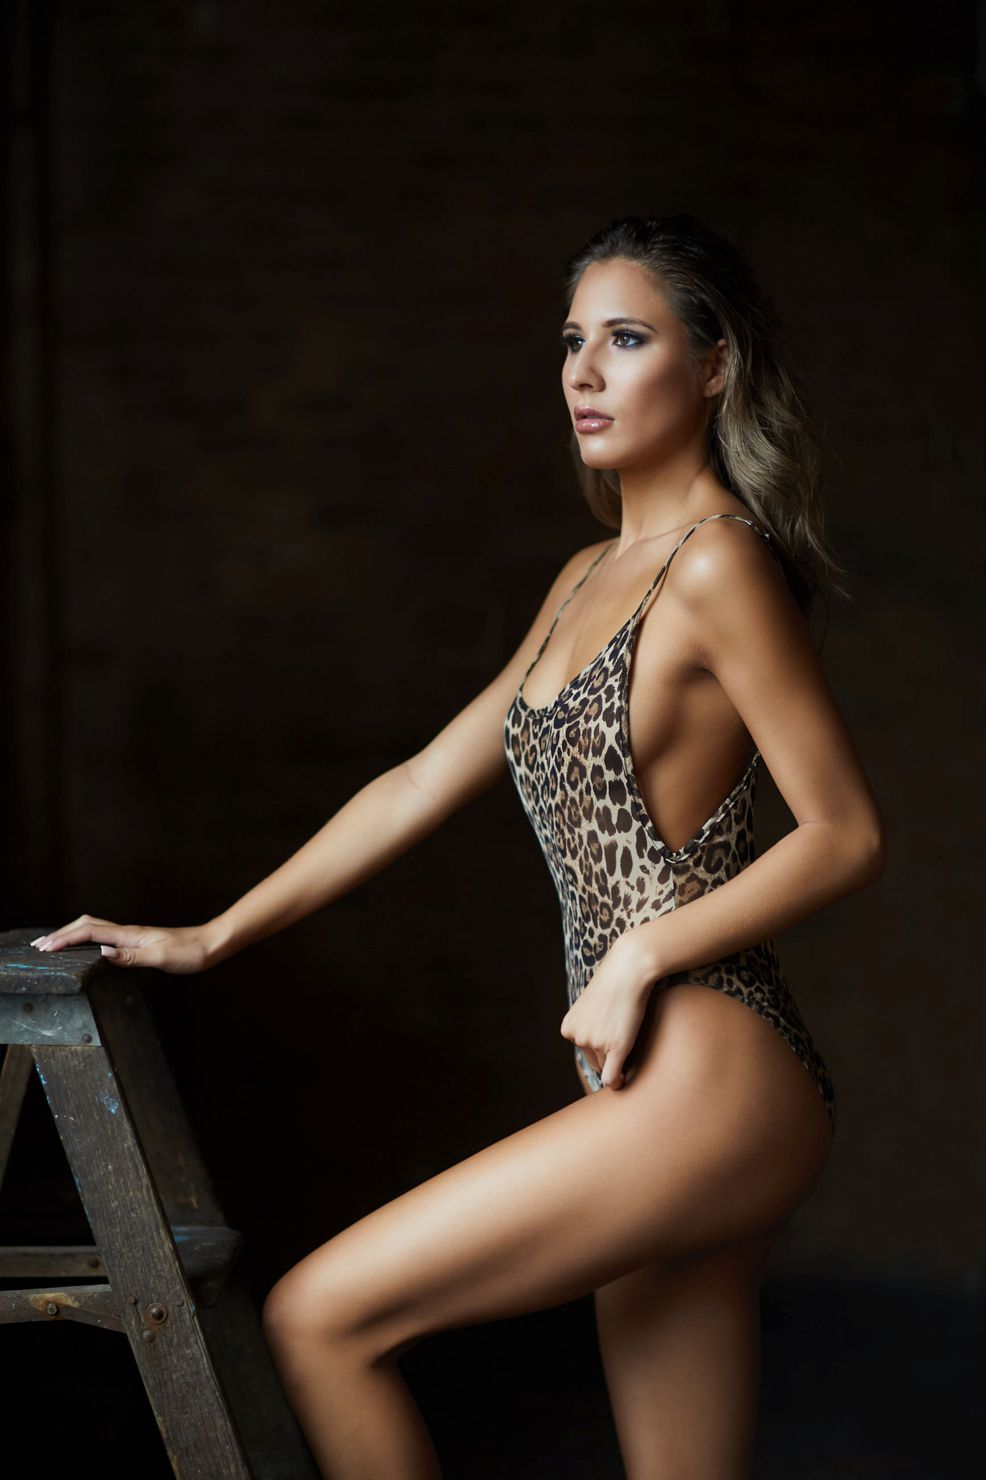 best chicago boudoir makeup photography - Top 3 Reasons Why You Should Have a Boudoir Session.